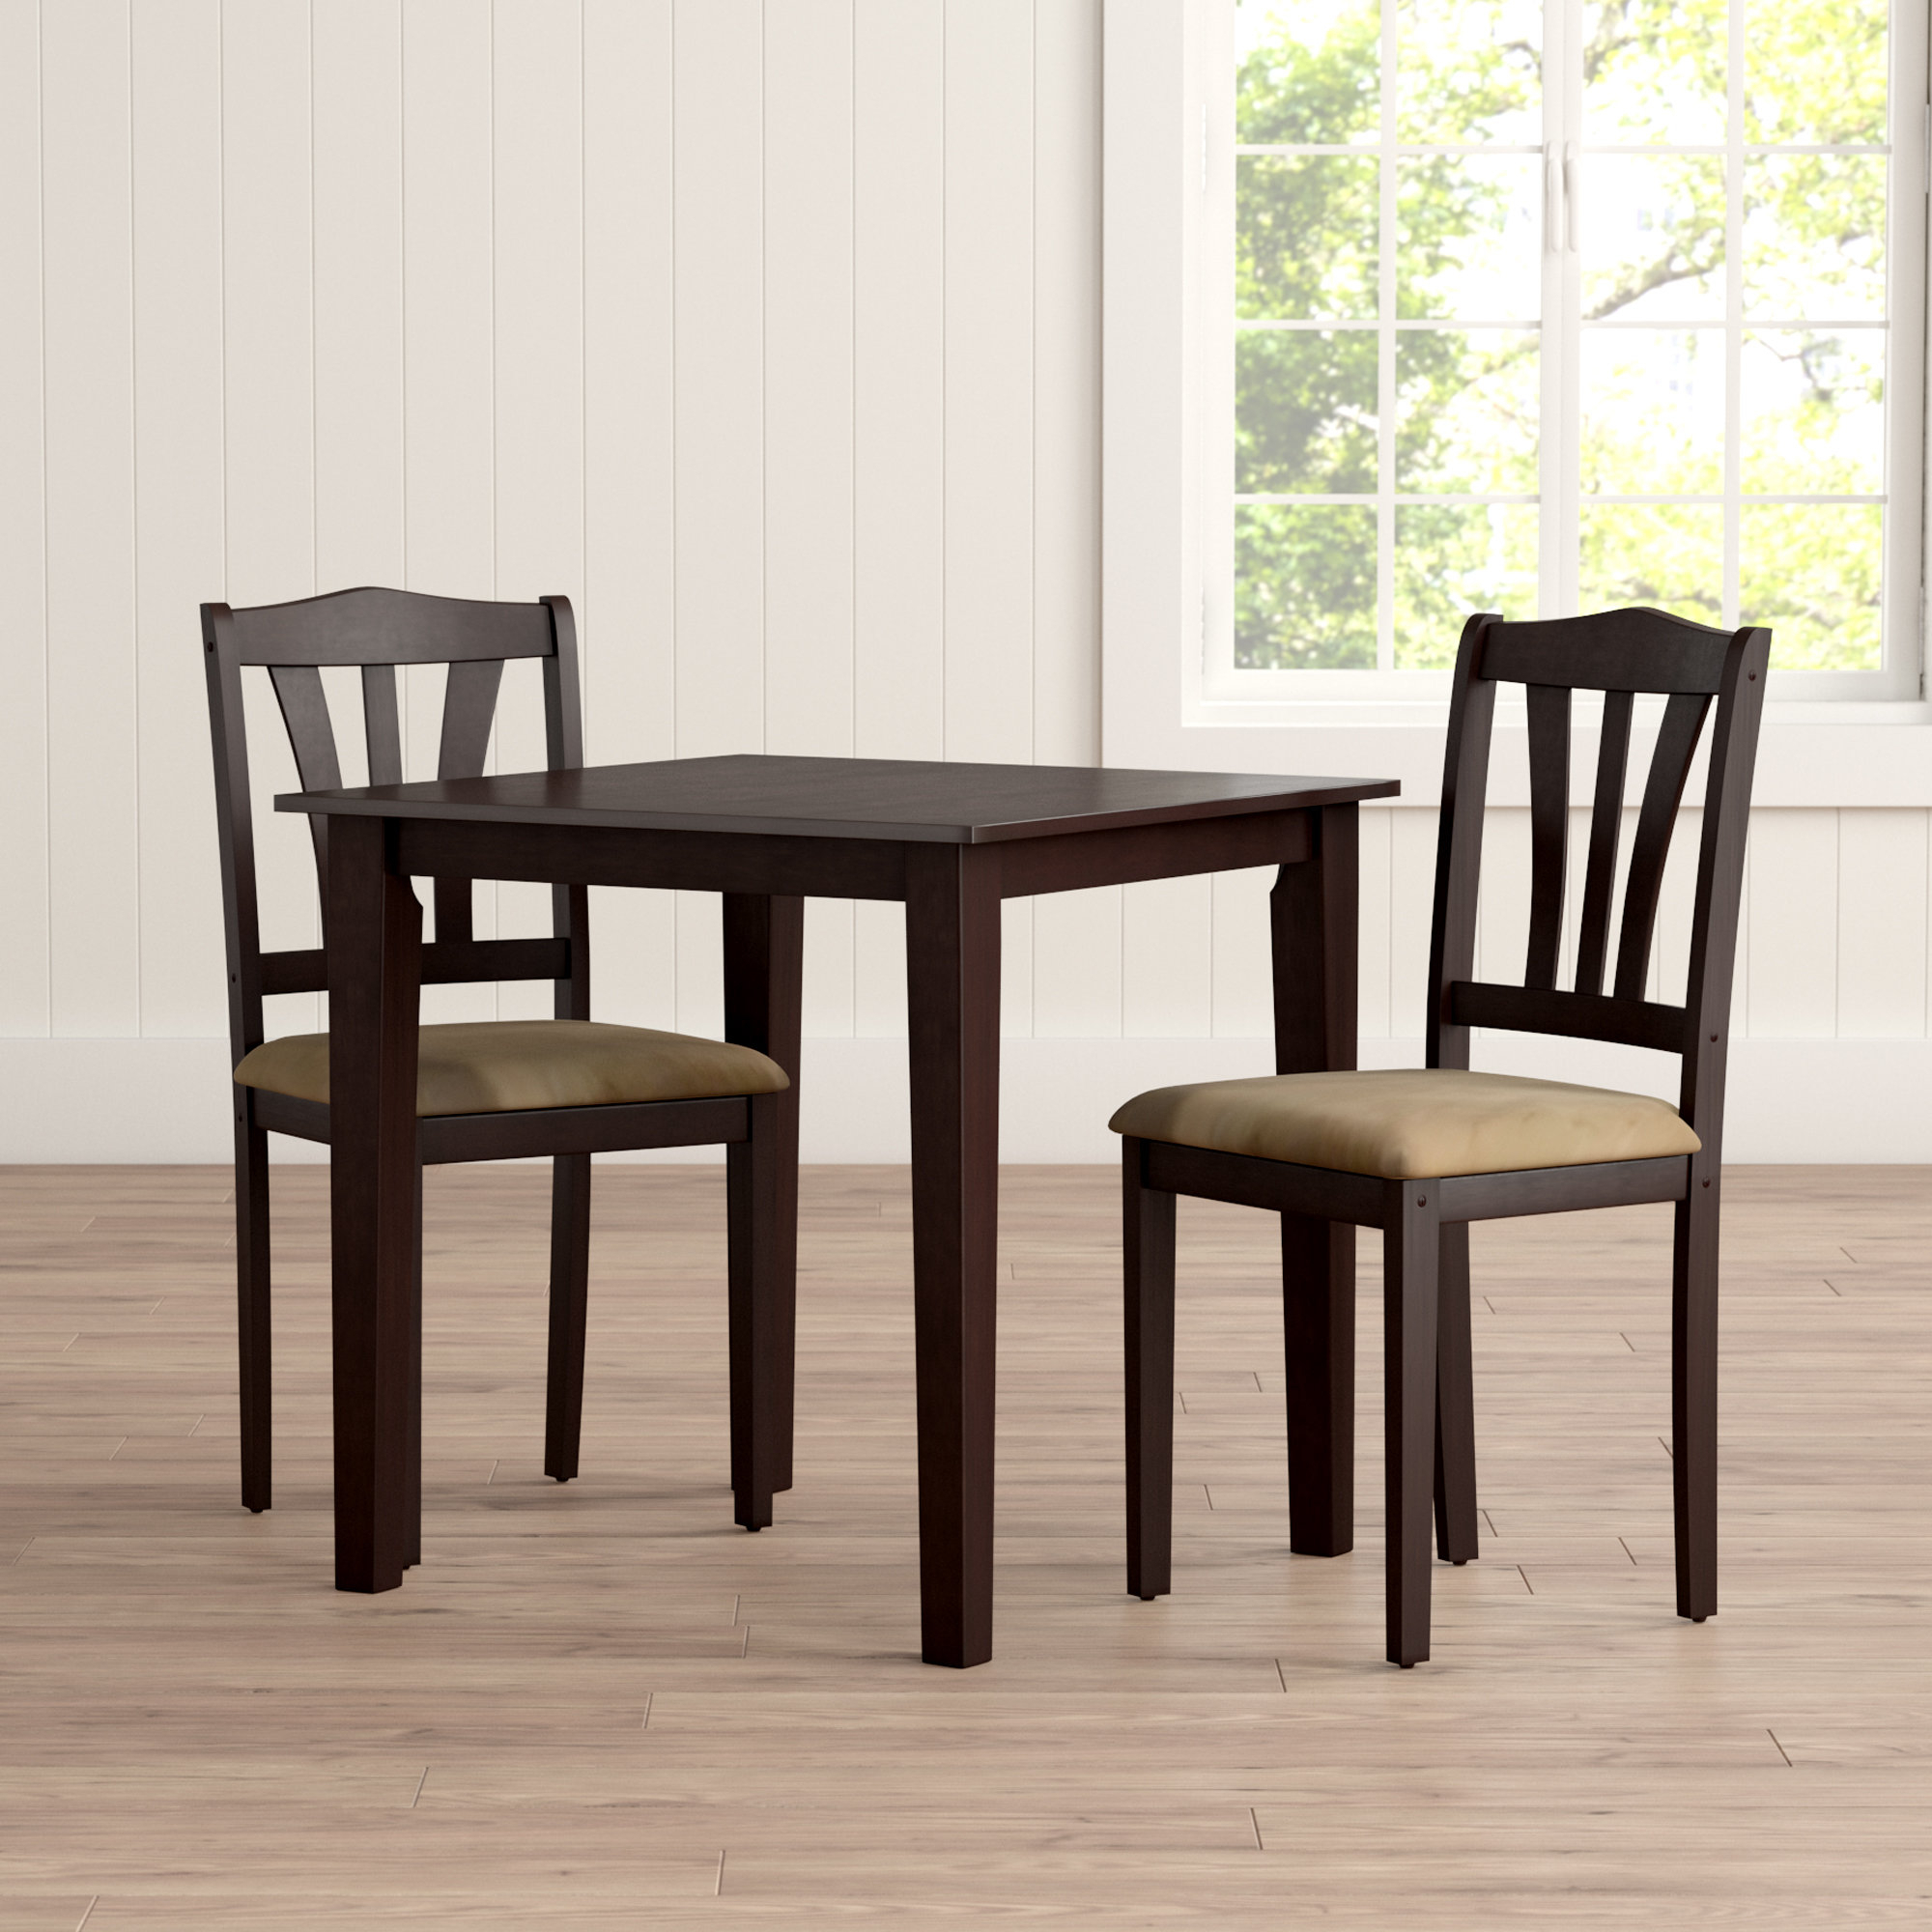 Dinah 3 Piece Dining Set In Most Popular Baillie 3 Piece Dining Sets (View 11 of 20)